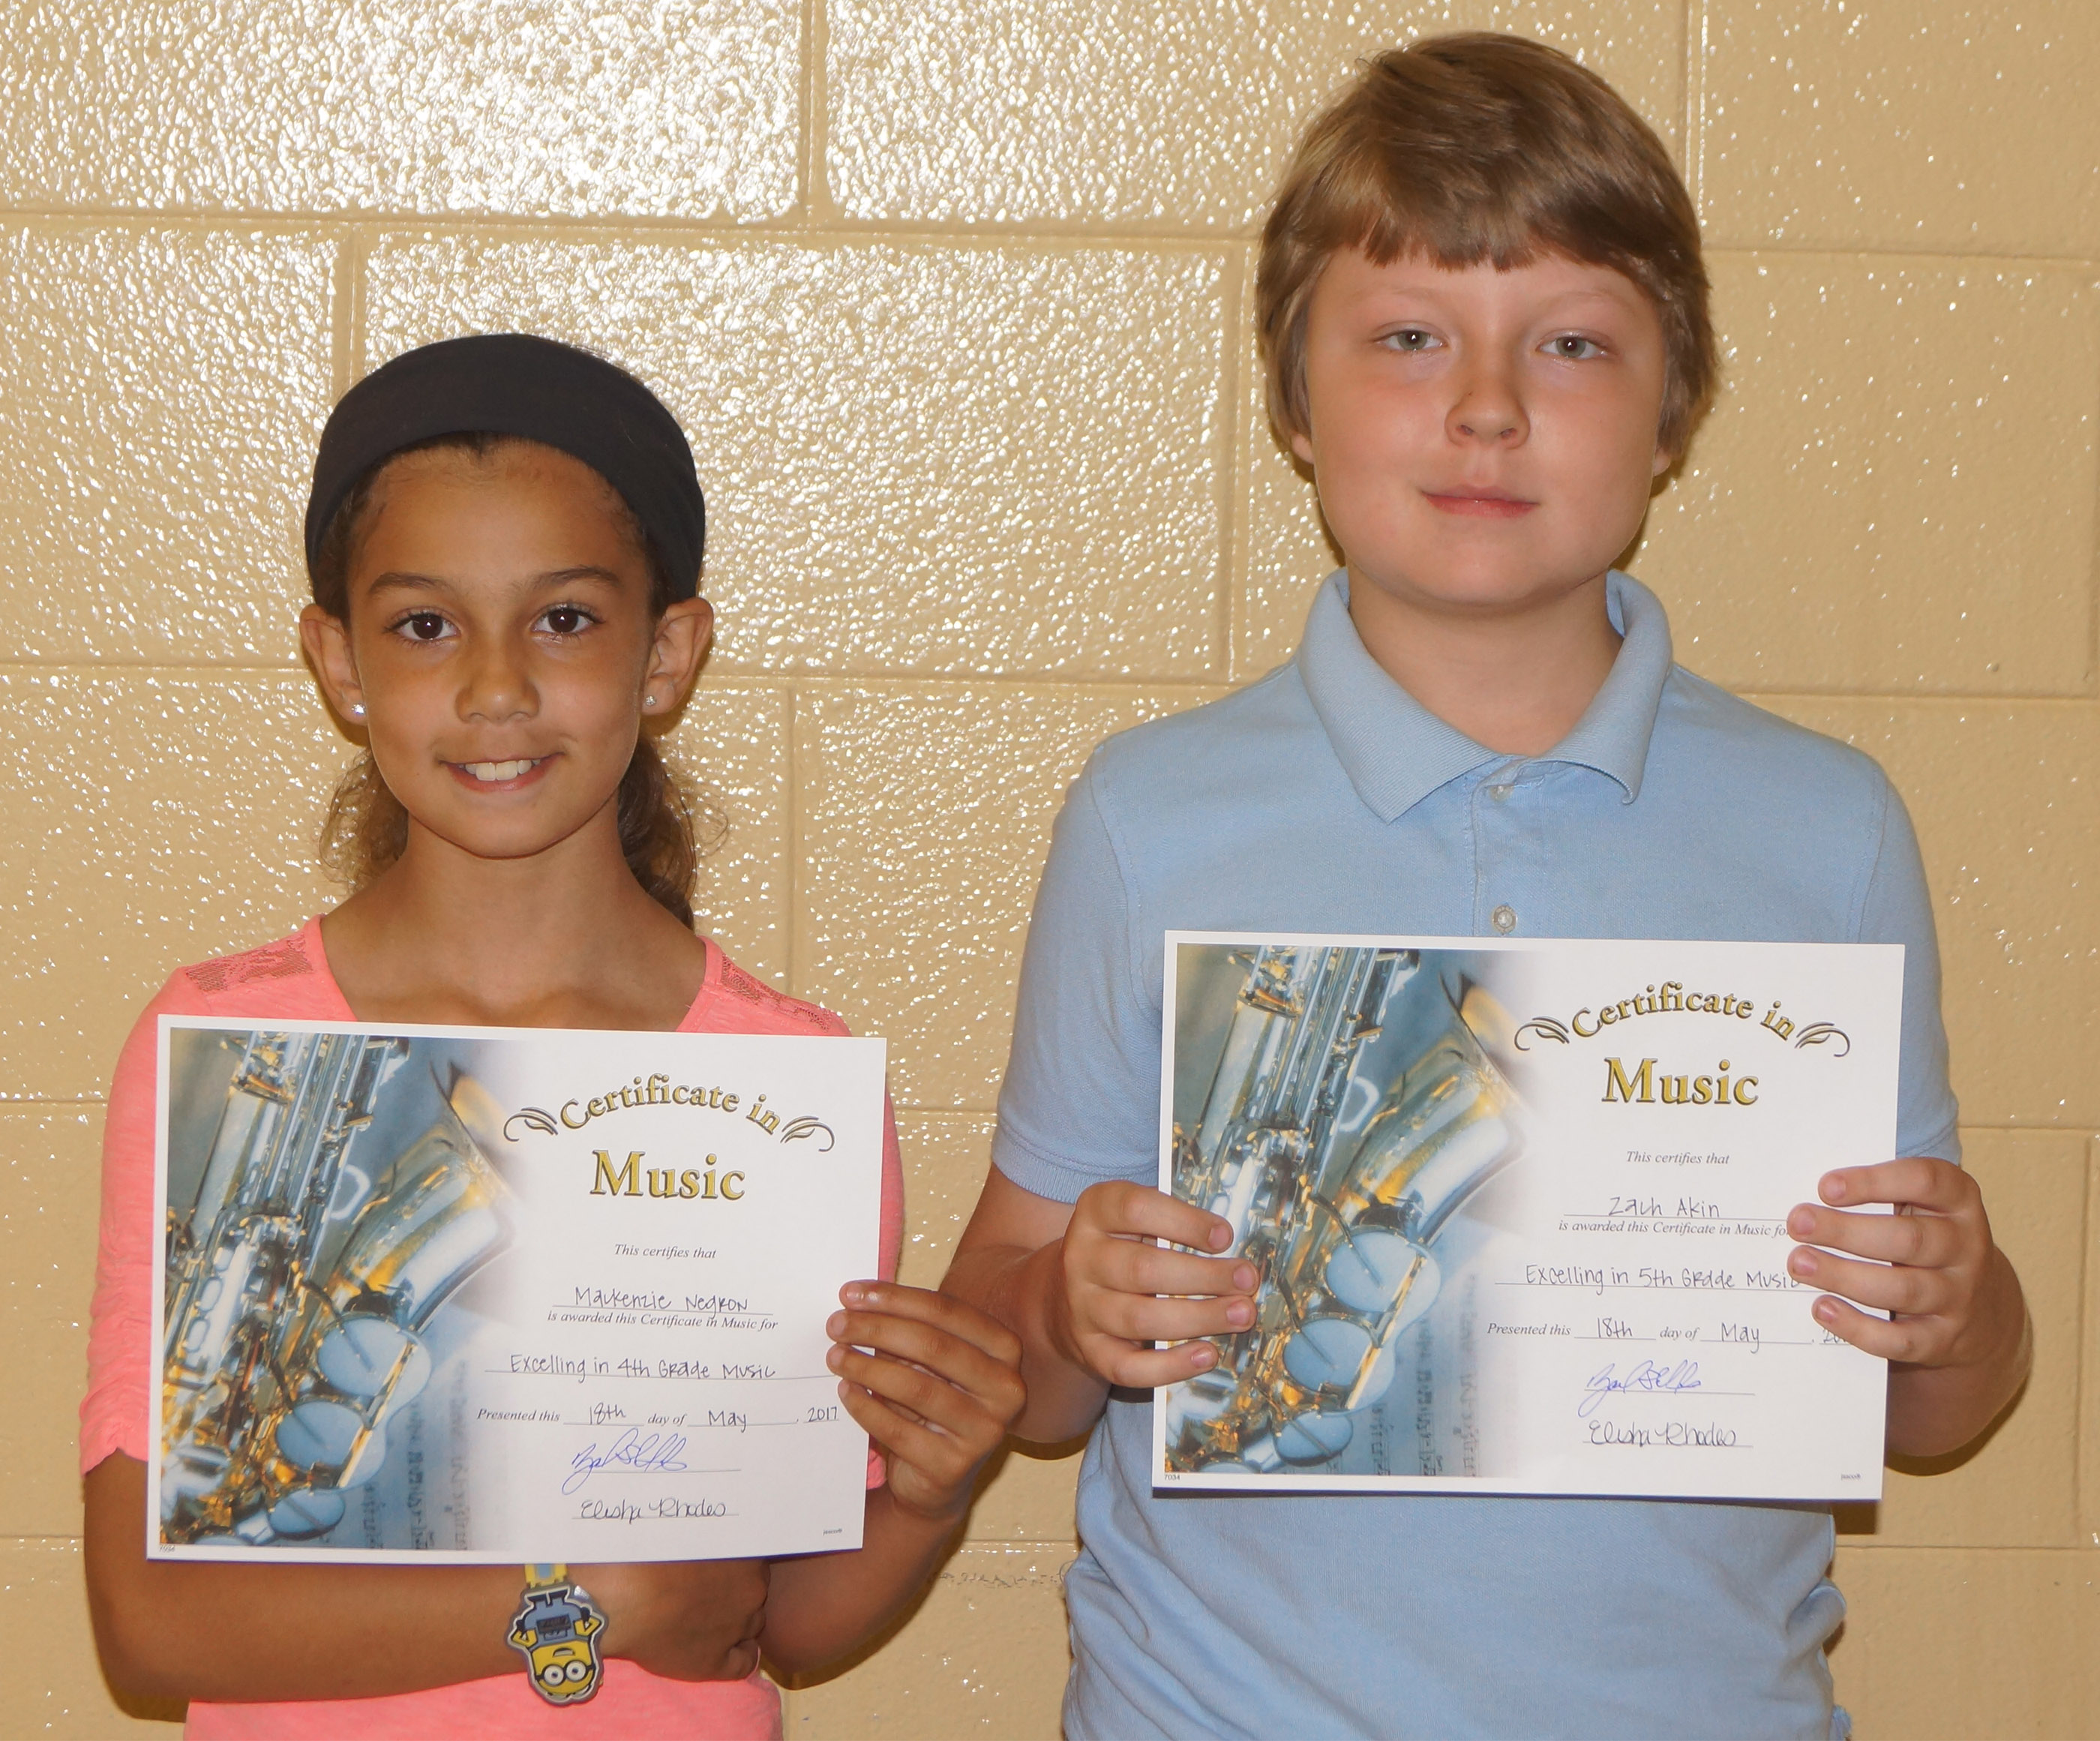 Instrumental music award winners are fourth-grader Mackenzie Negron and fifth-grader Zachary Akin.